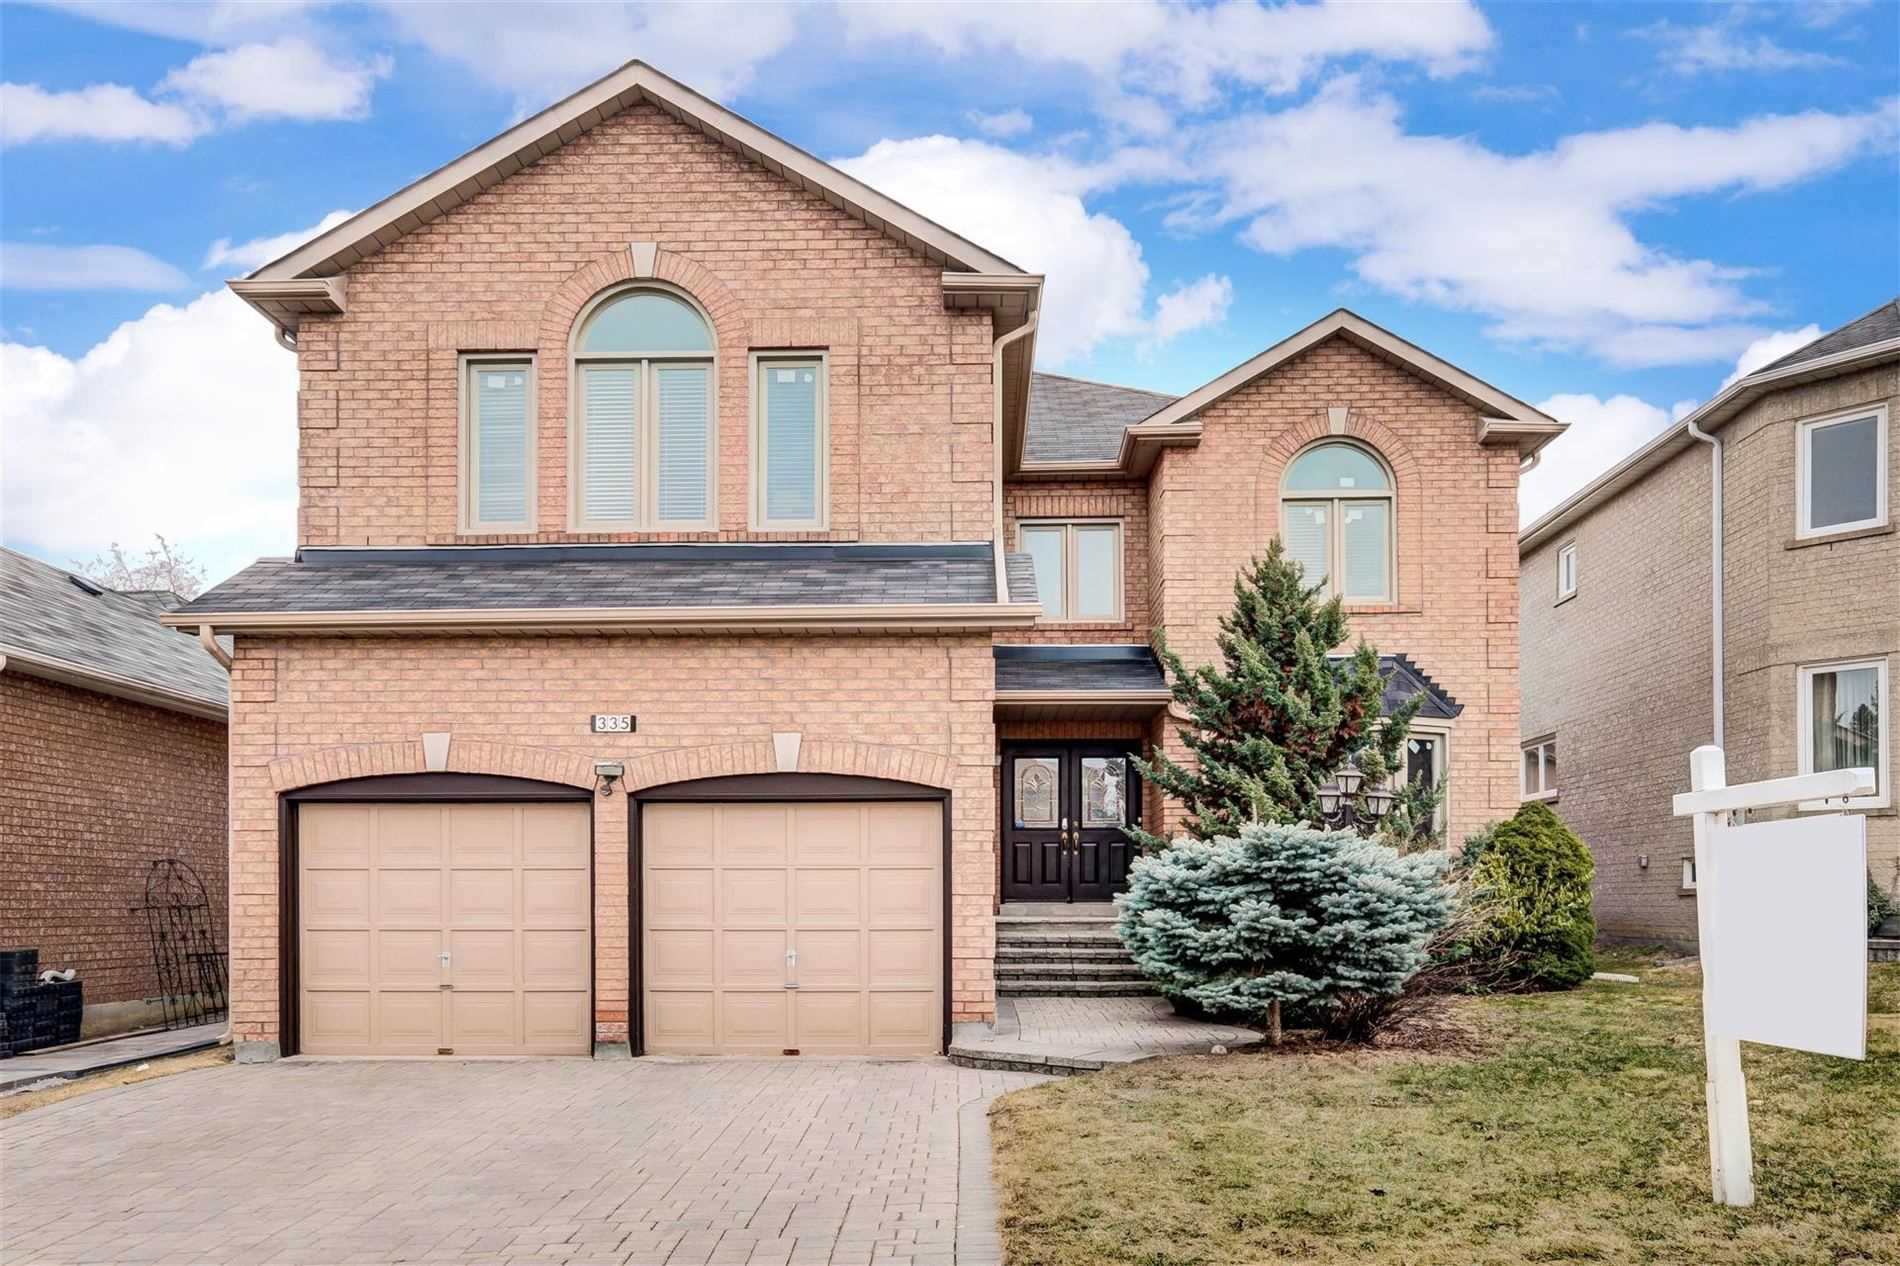 335 Brookside Ave, Richmond Hill, Ontario L4C0G6, 4 Bedrooms Bedrooms, 11 Rooms Rooms,5 BathroomsBathrooms,Detached,For Sale,Brookside,N5172567